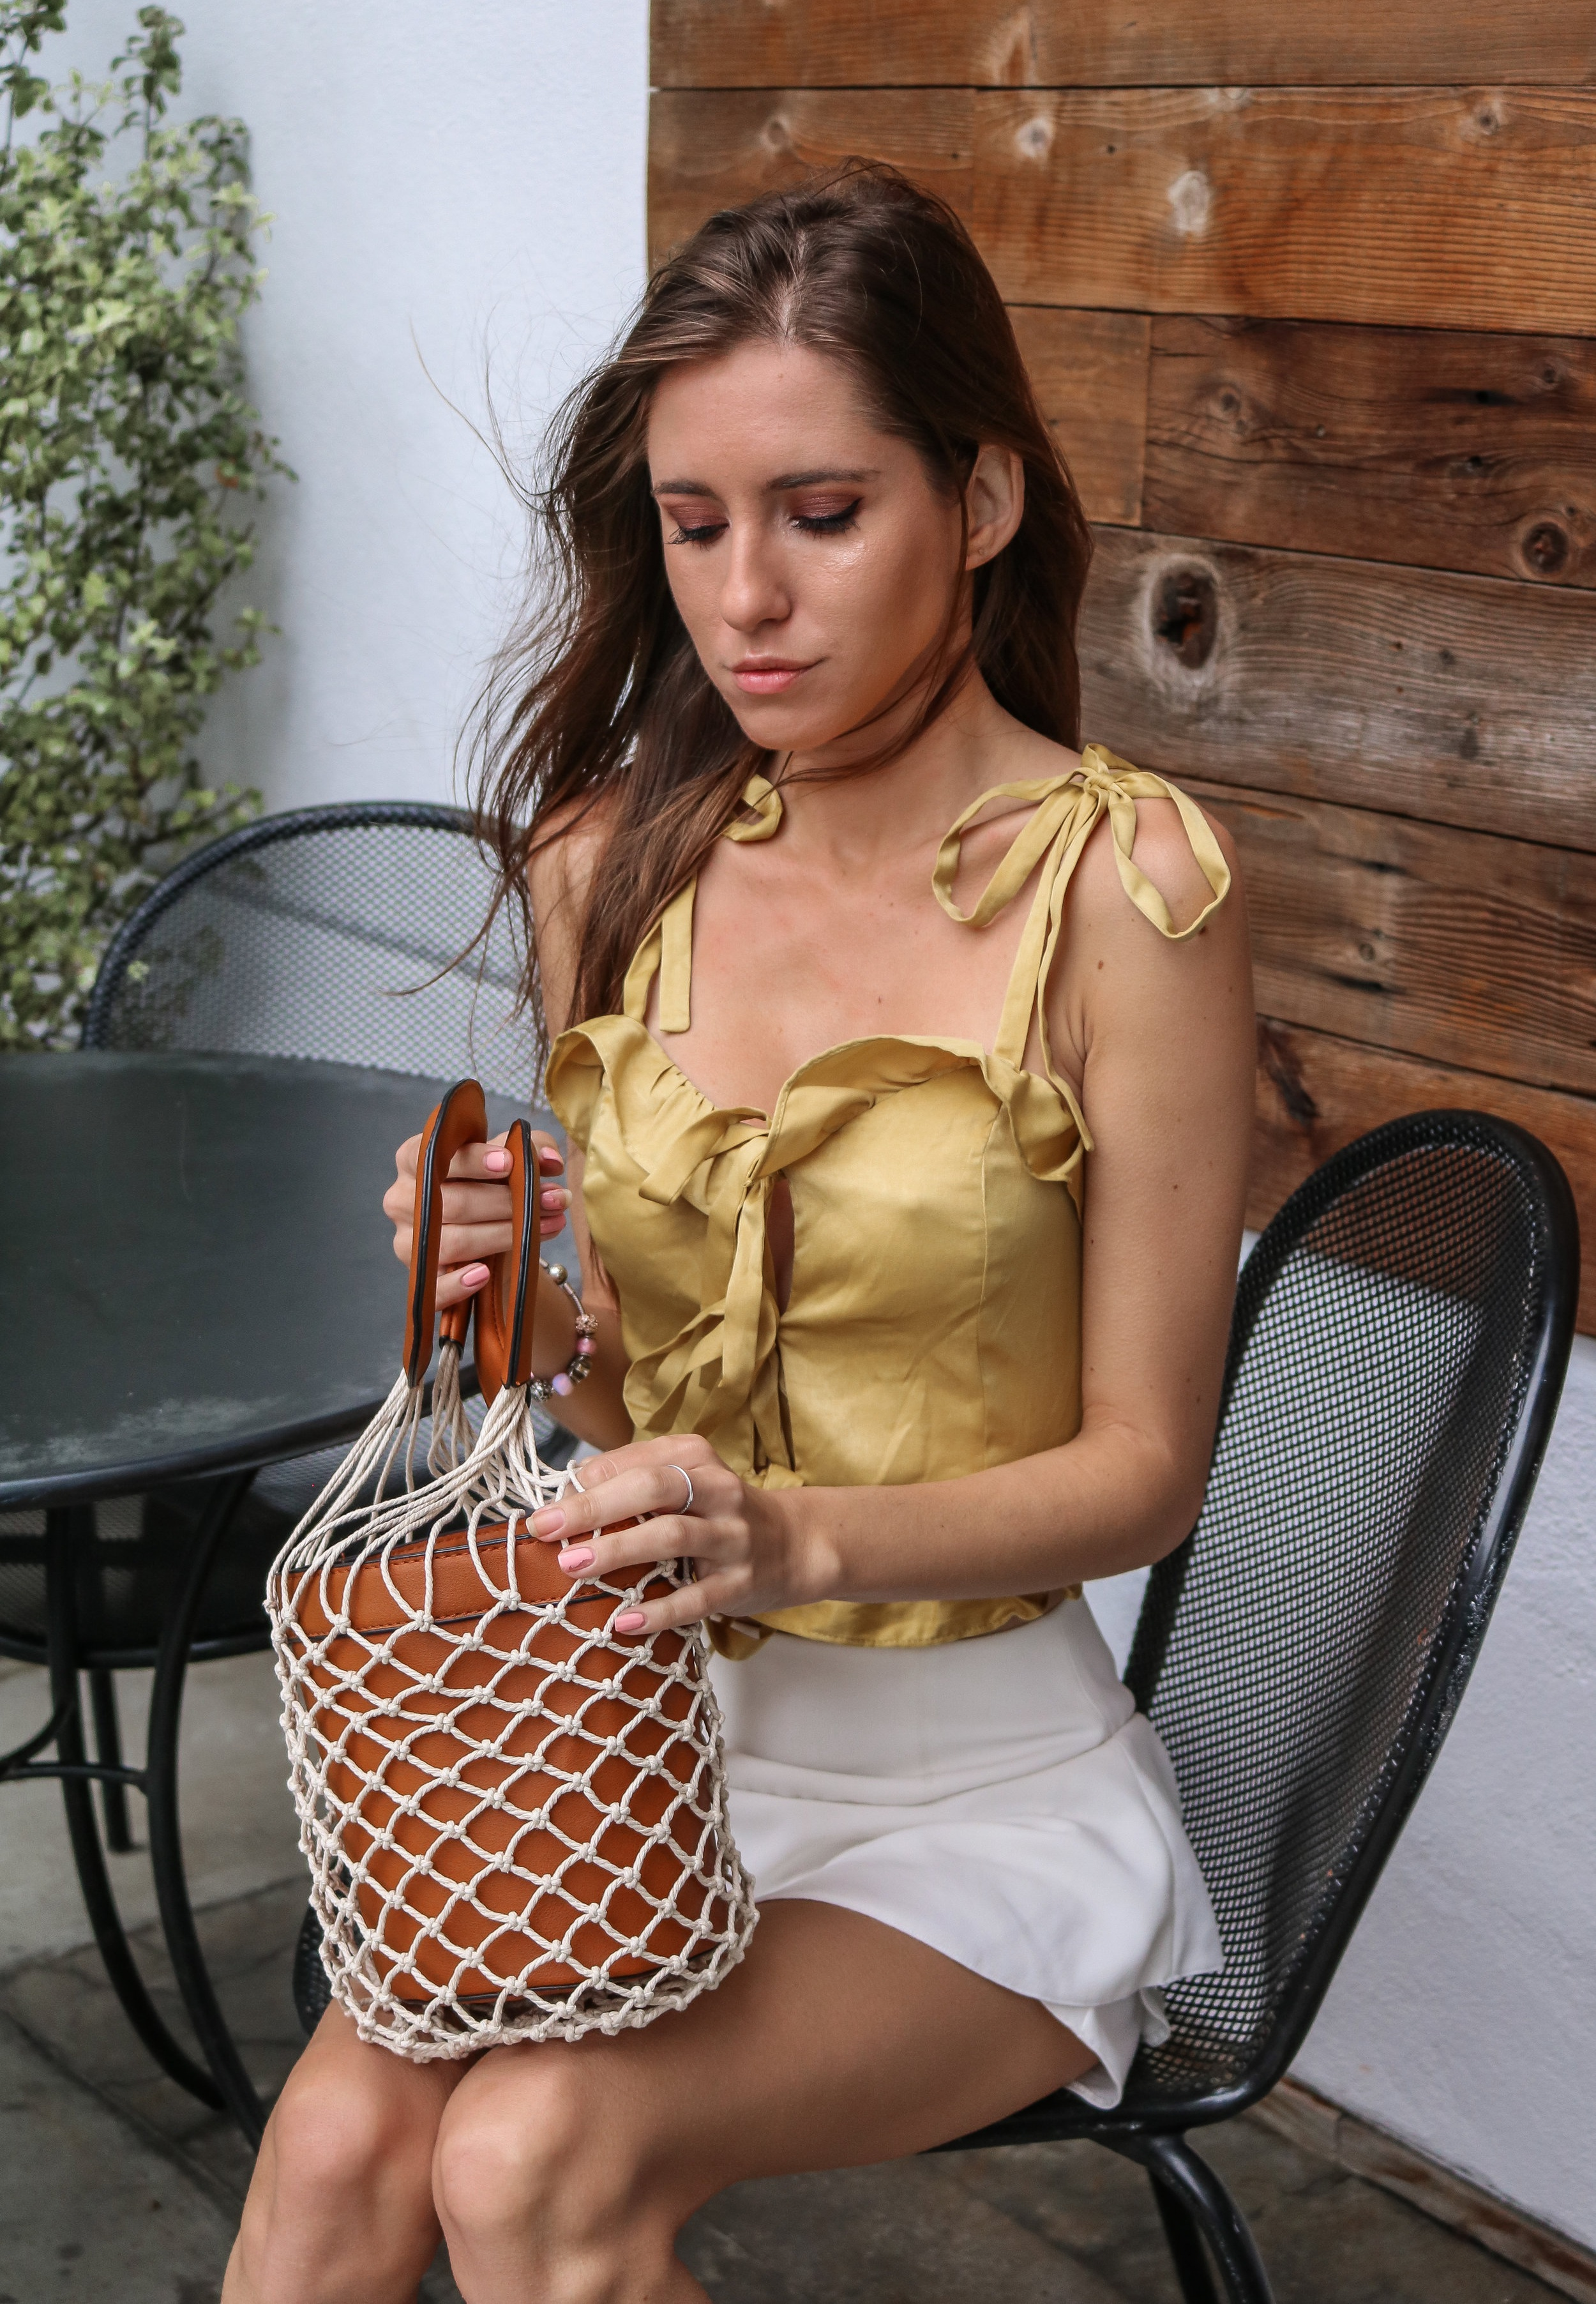 The+Hungarian+Brunette+Yellow+satin+top+and+net+bag+%286+of+12%29.jpg